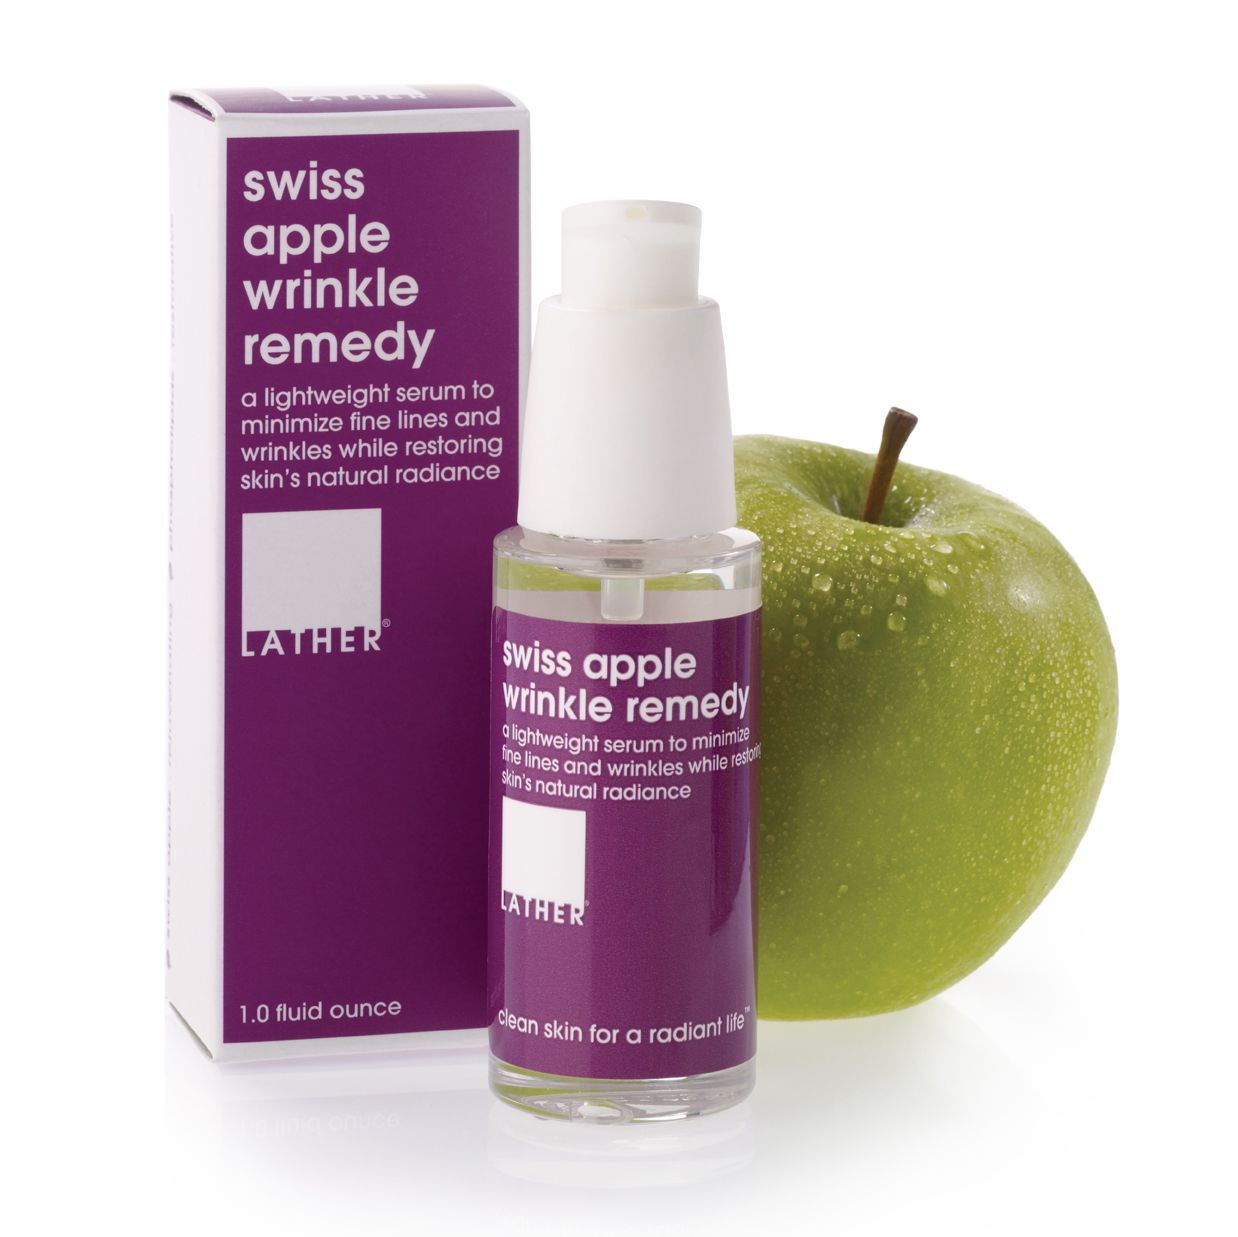 This anti-aging treatment is formulated with stem cells from the rare Swiss apple Uttwiler Spatlauber which, being particularly rich in phyto-nutrients, proteins and long-living cells, is known for its long life and excellent storability. The internal fluid of these plant cells contain components which contribute to the visible decrease of wrinkle depth and promote the self-renewal capacity of the skin, helping to preserve a youthful look and vitality. Paraben-free. www.lather.com